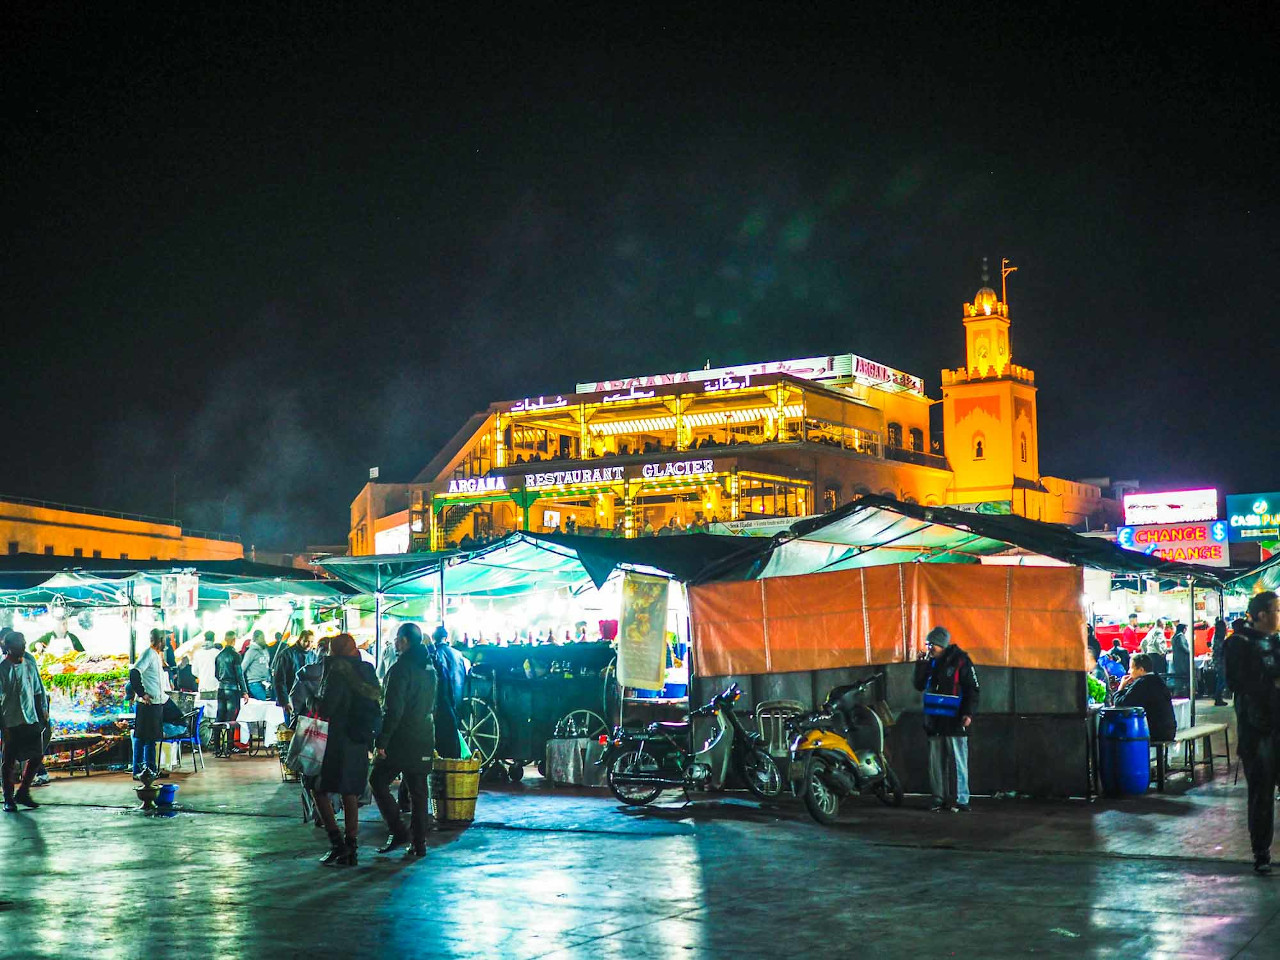 Marrakesh Jemaa el-Fnaa Square is one of the best things to do in Marrakesh. Discover how to spend one week in Morocco from this article